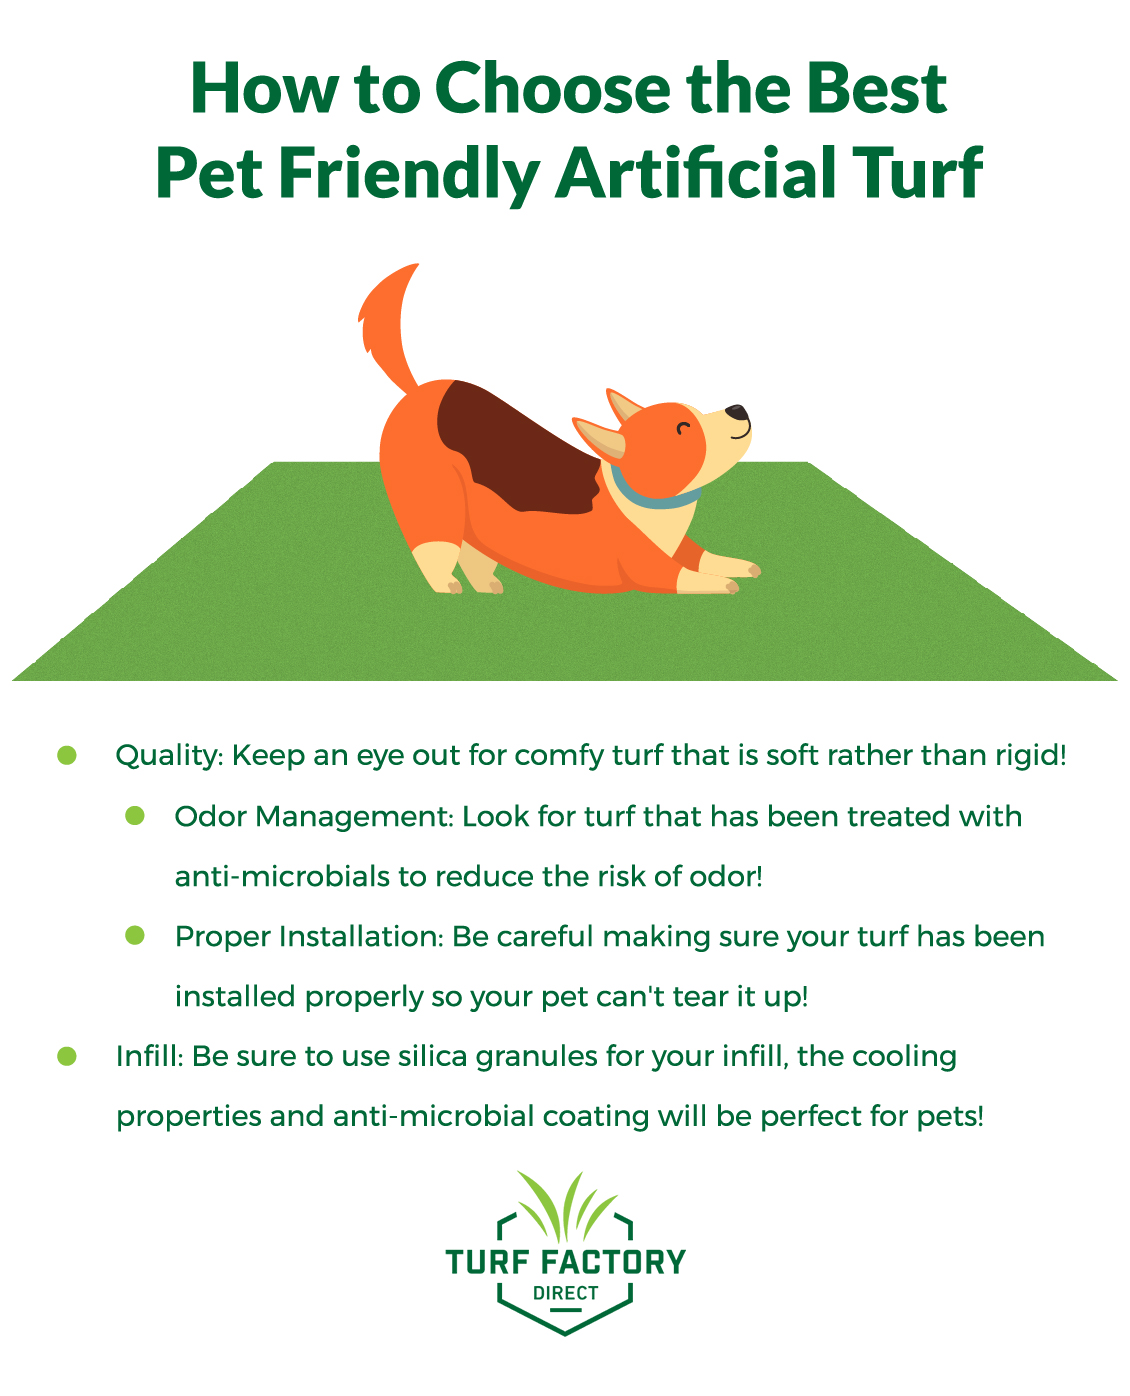 Artificial turf is a soft and comfortable alternative to natural grass that your pets will love. Invest in odor-free turf today